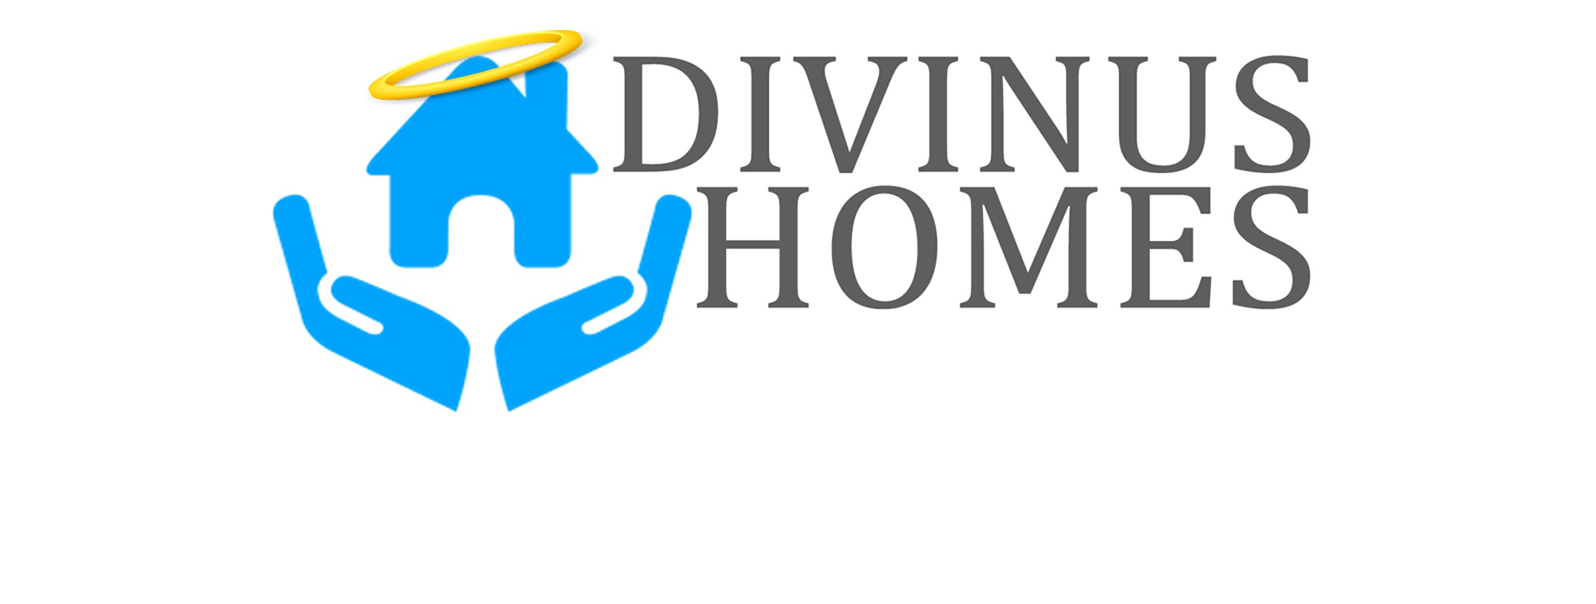 Divinus Homes Main logo